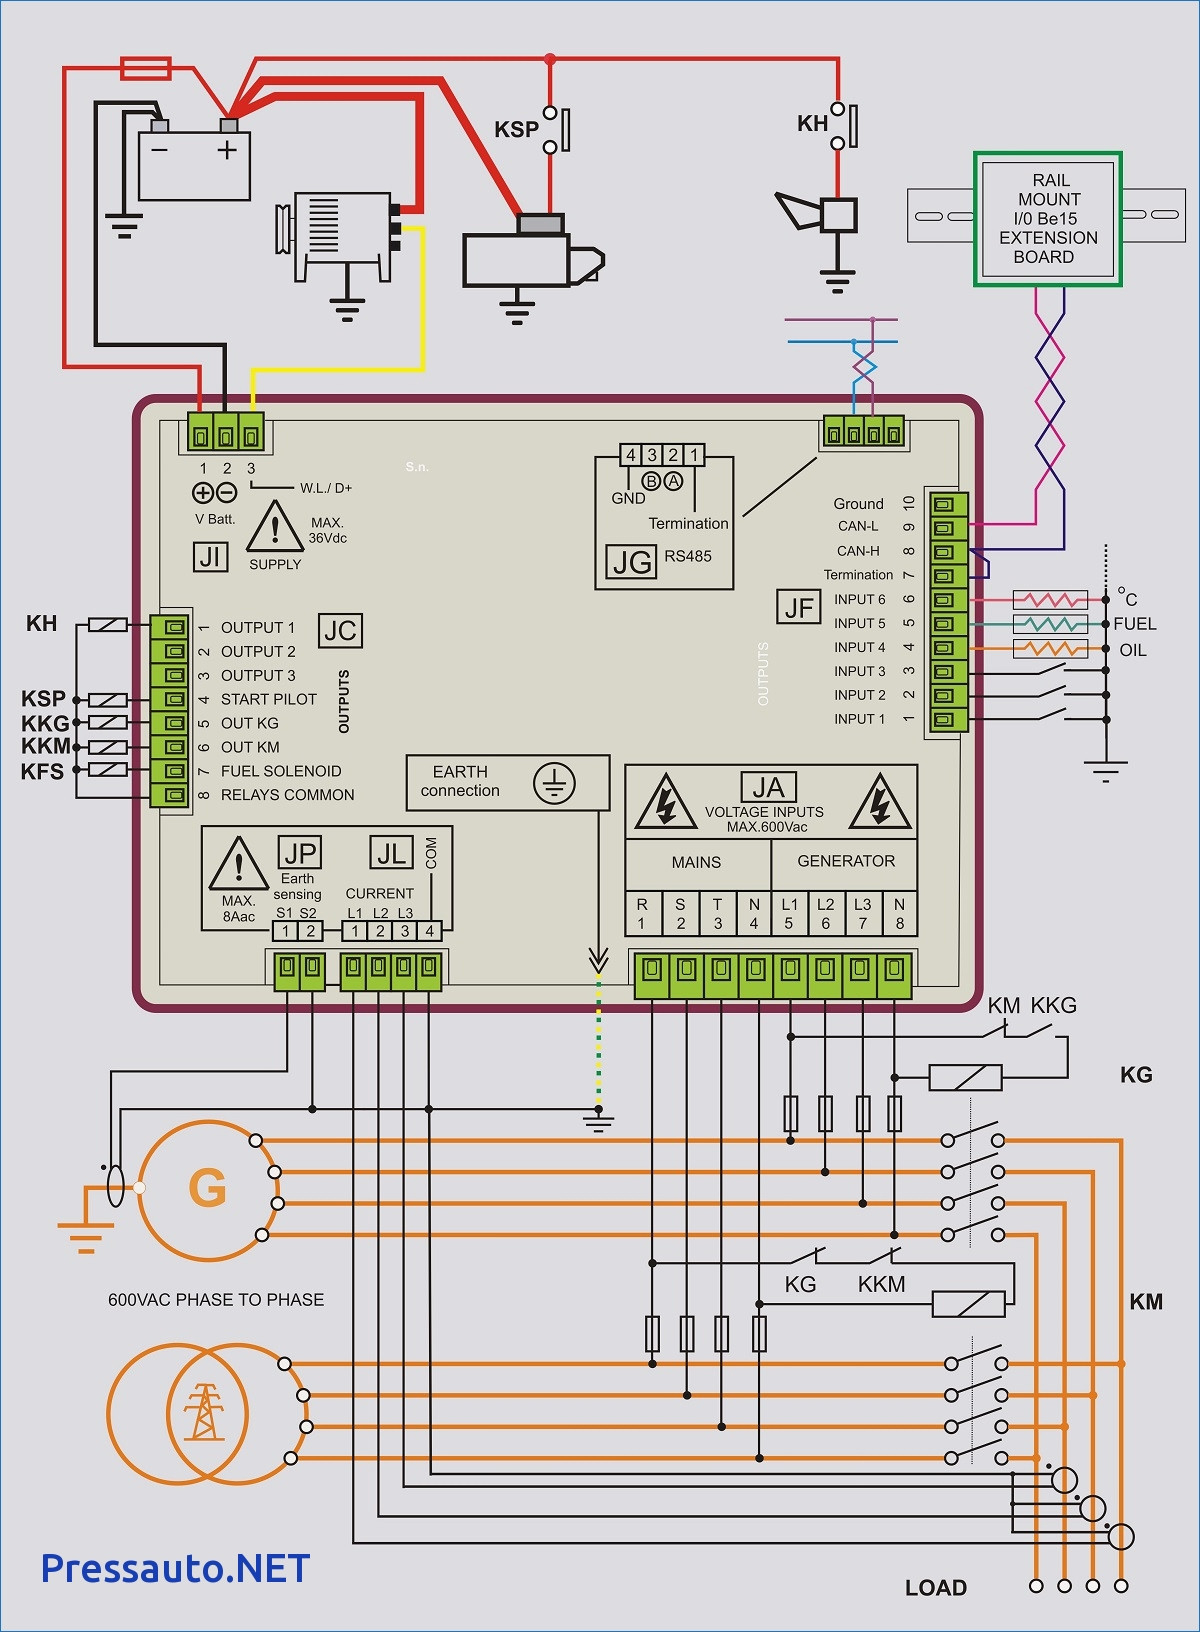 generac automatic transfer switch wiring diagram Collection-Wiring Diagram Standby Generator New Portable Generator Transfer Switch Wiring Diagram for Manual Generac 17-l